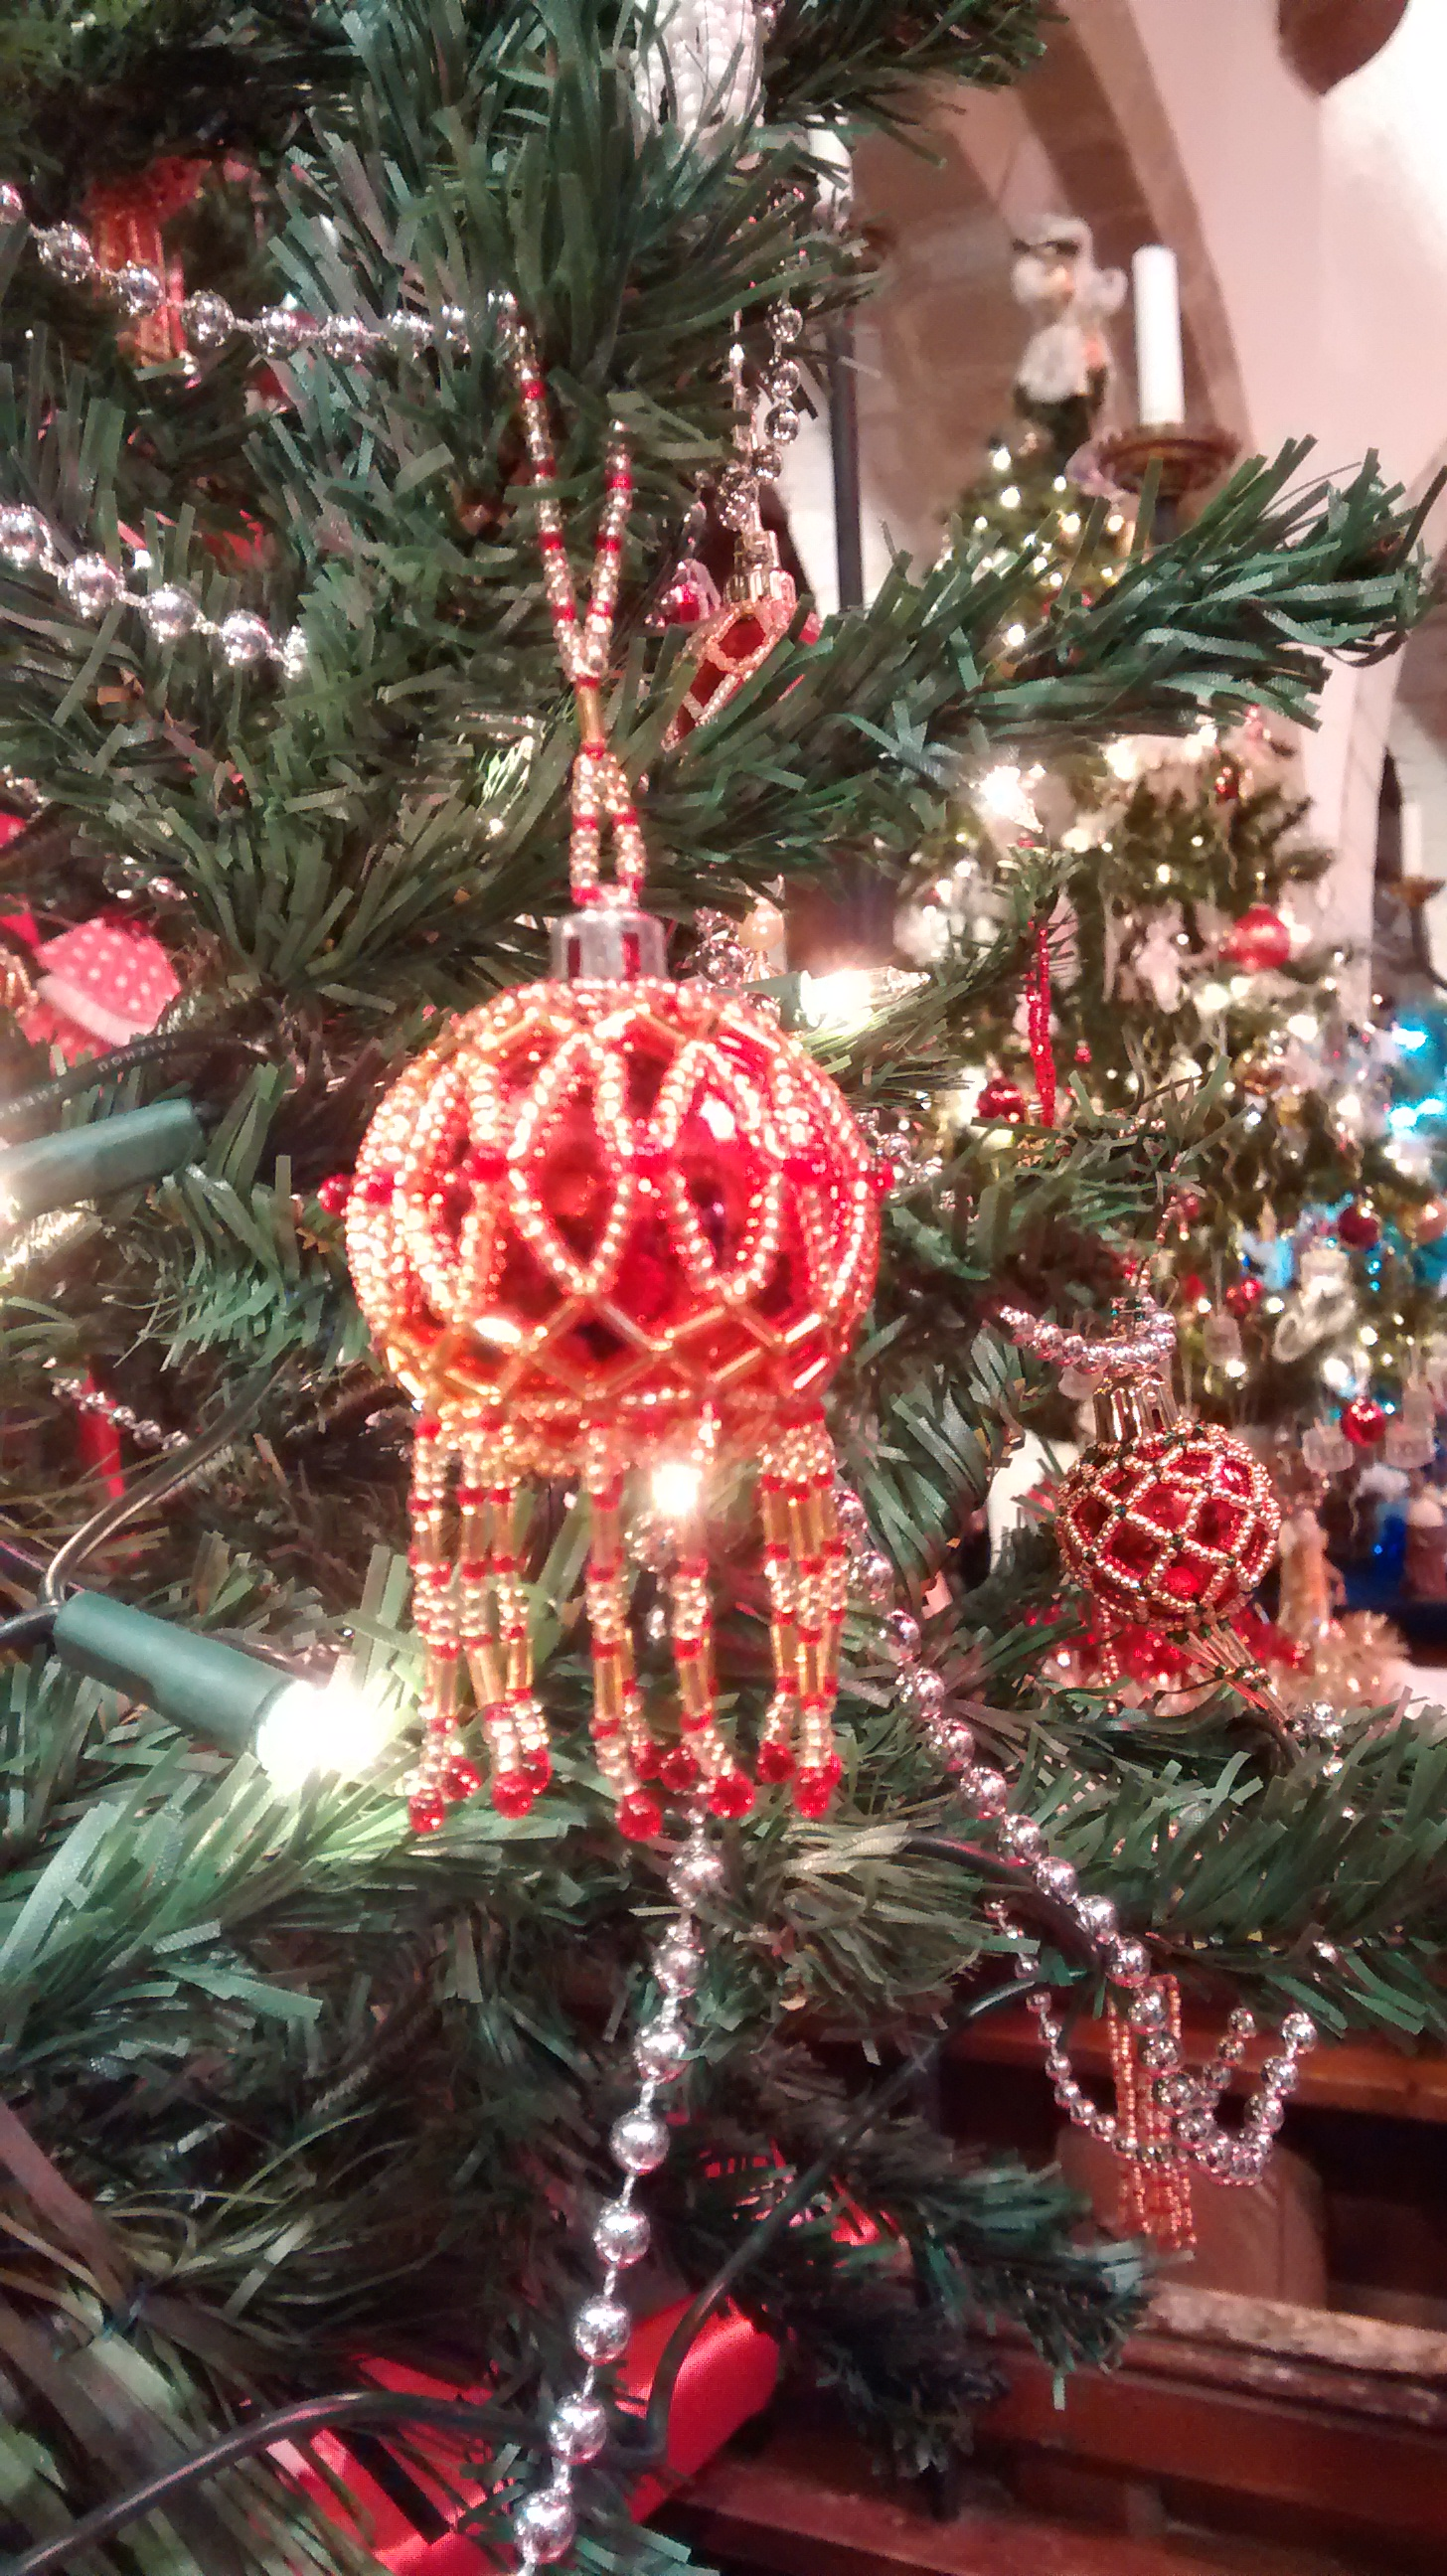 Bauble close up